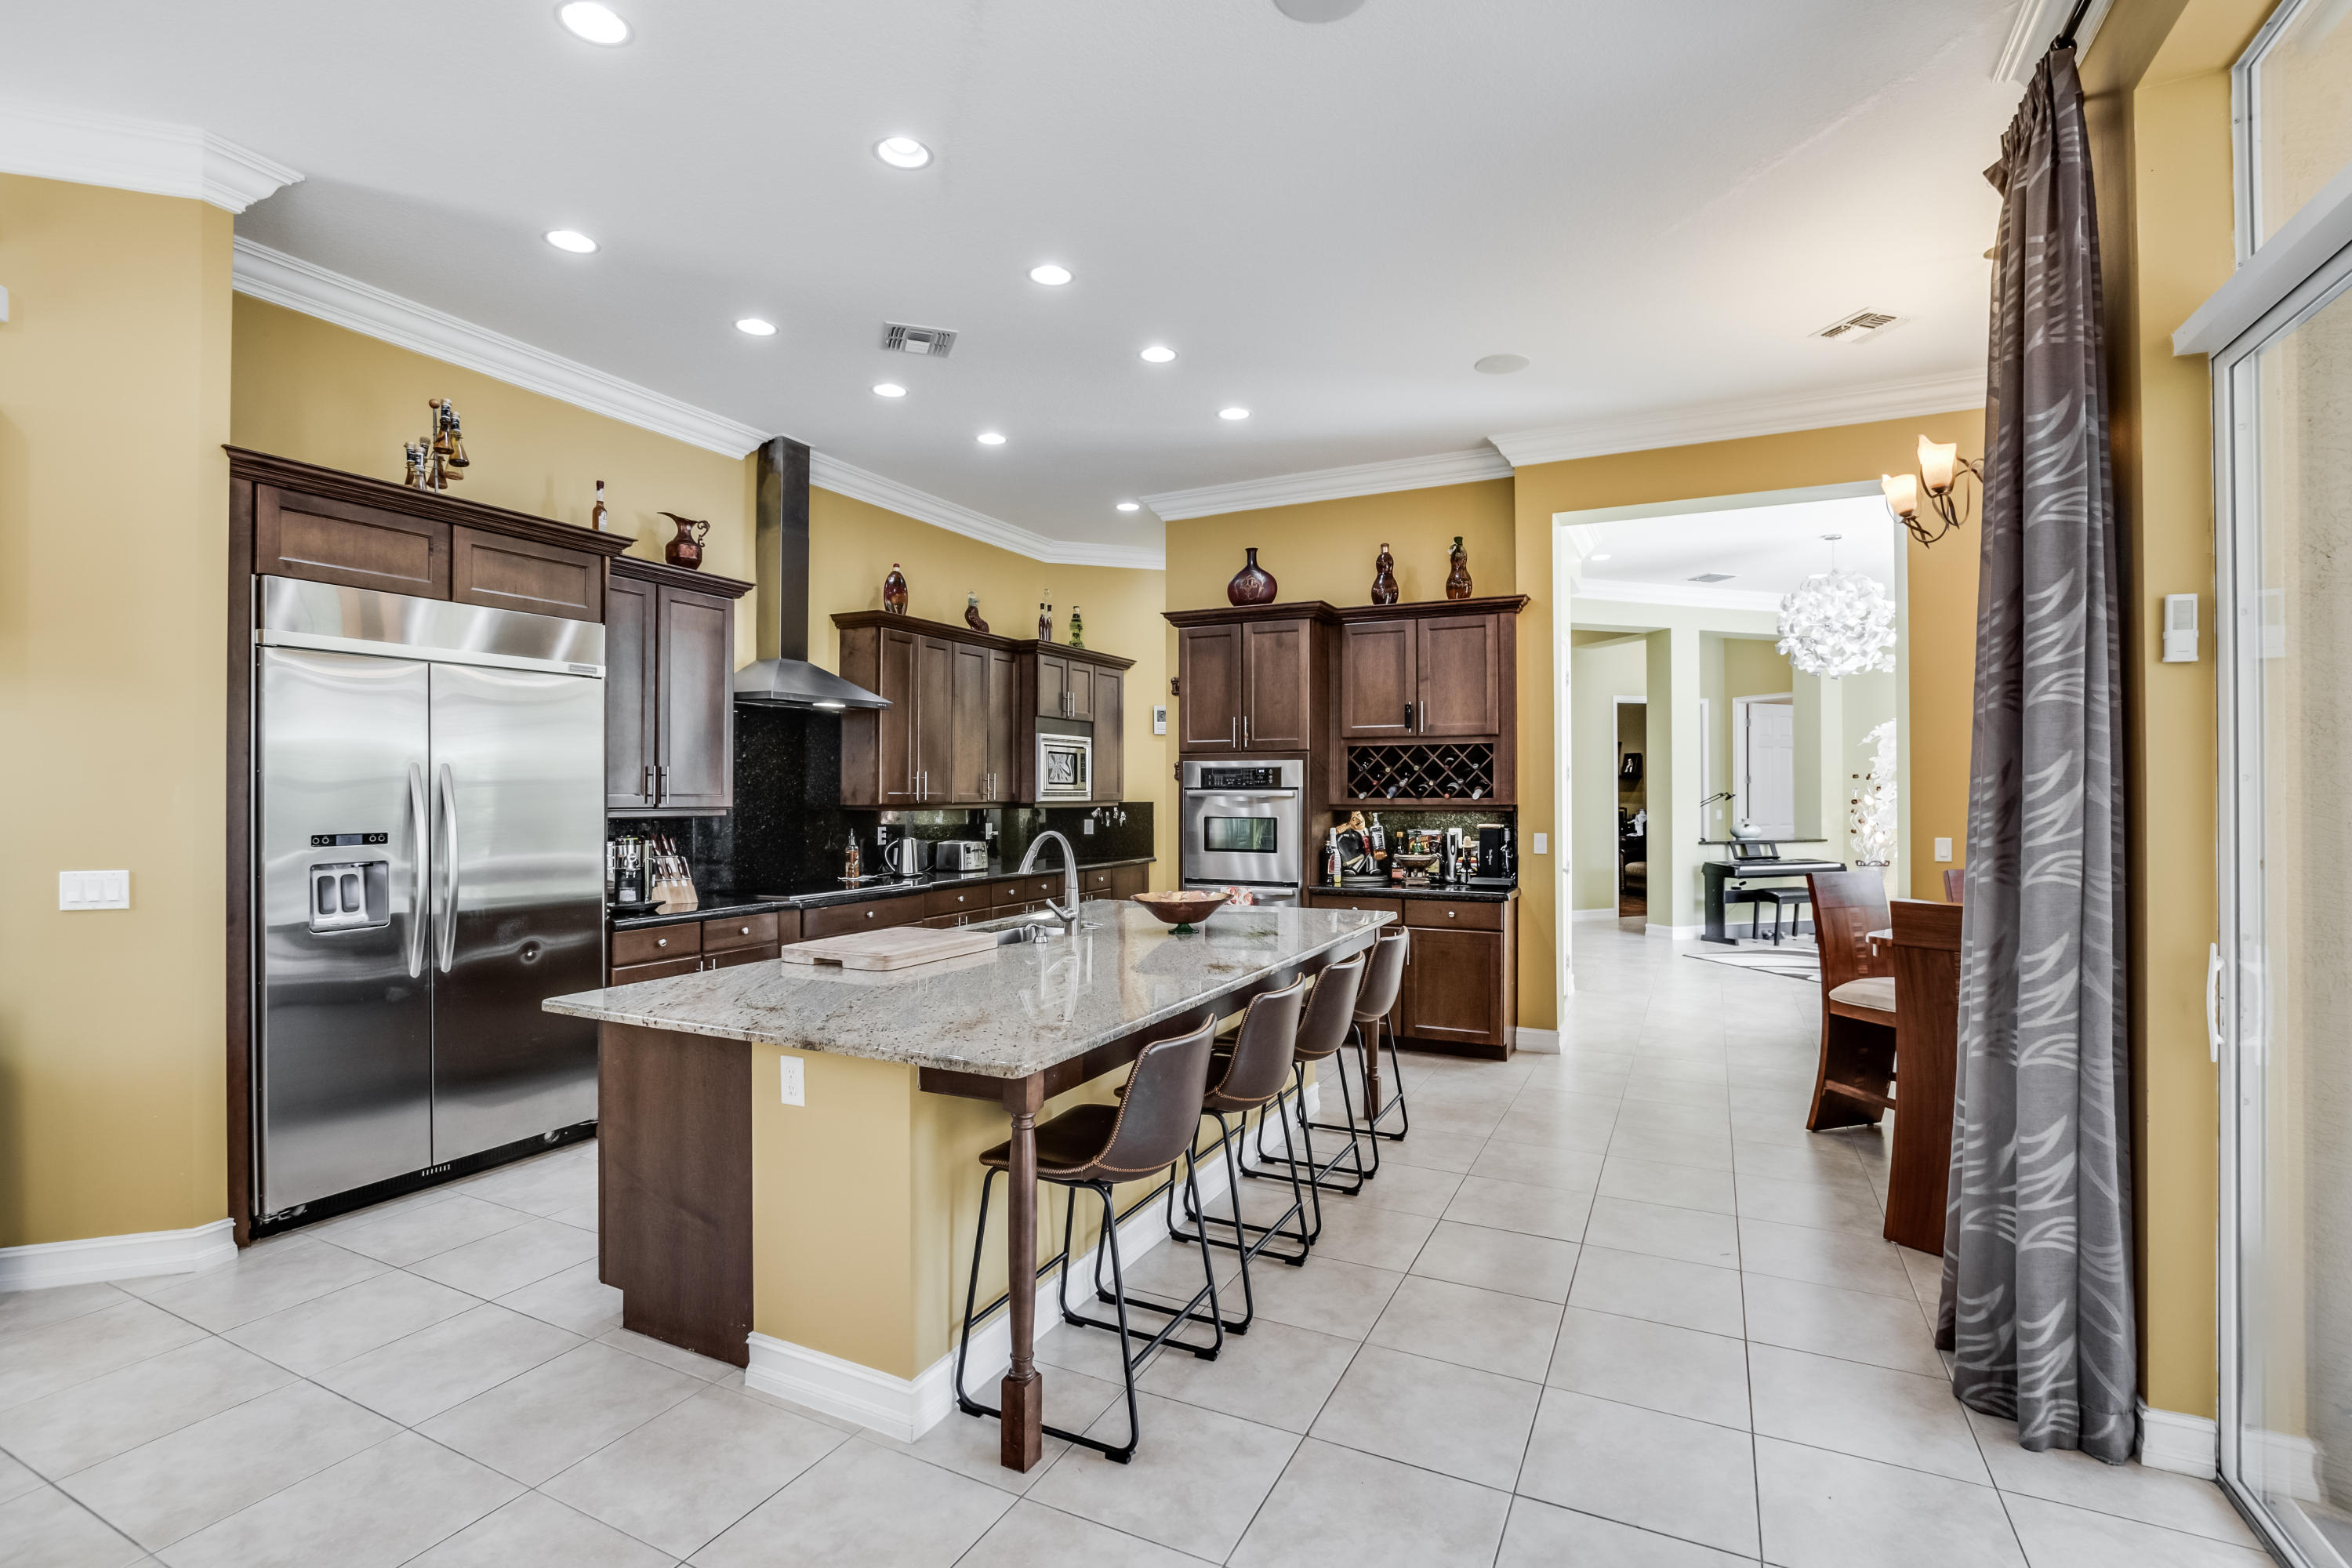 9481 Mcaneeny Court, Wellington, Florida 33414, 5 Bedrooms Bedrooms, ,4.1 BathroomsBathrooms,Single Family,For Sale,Olympia,Mcaneeny,1,RX-10603780